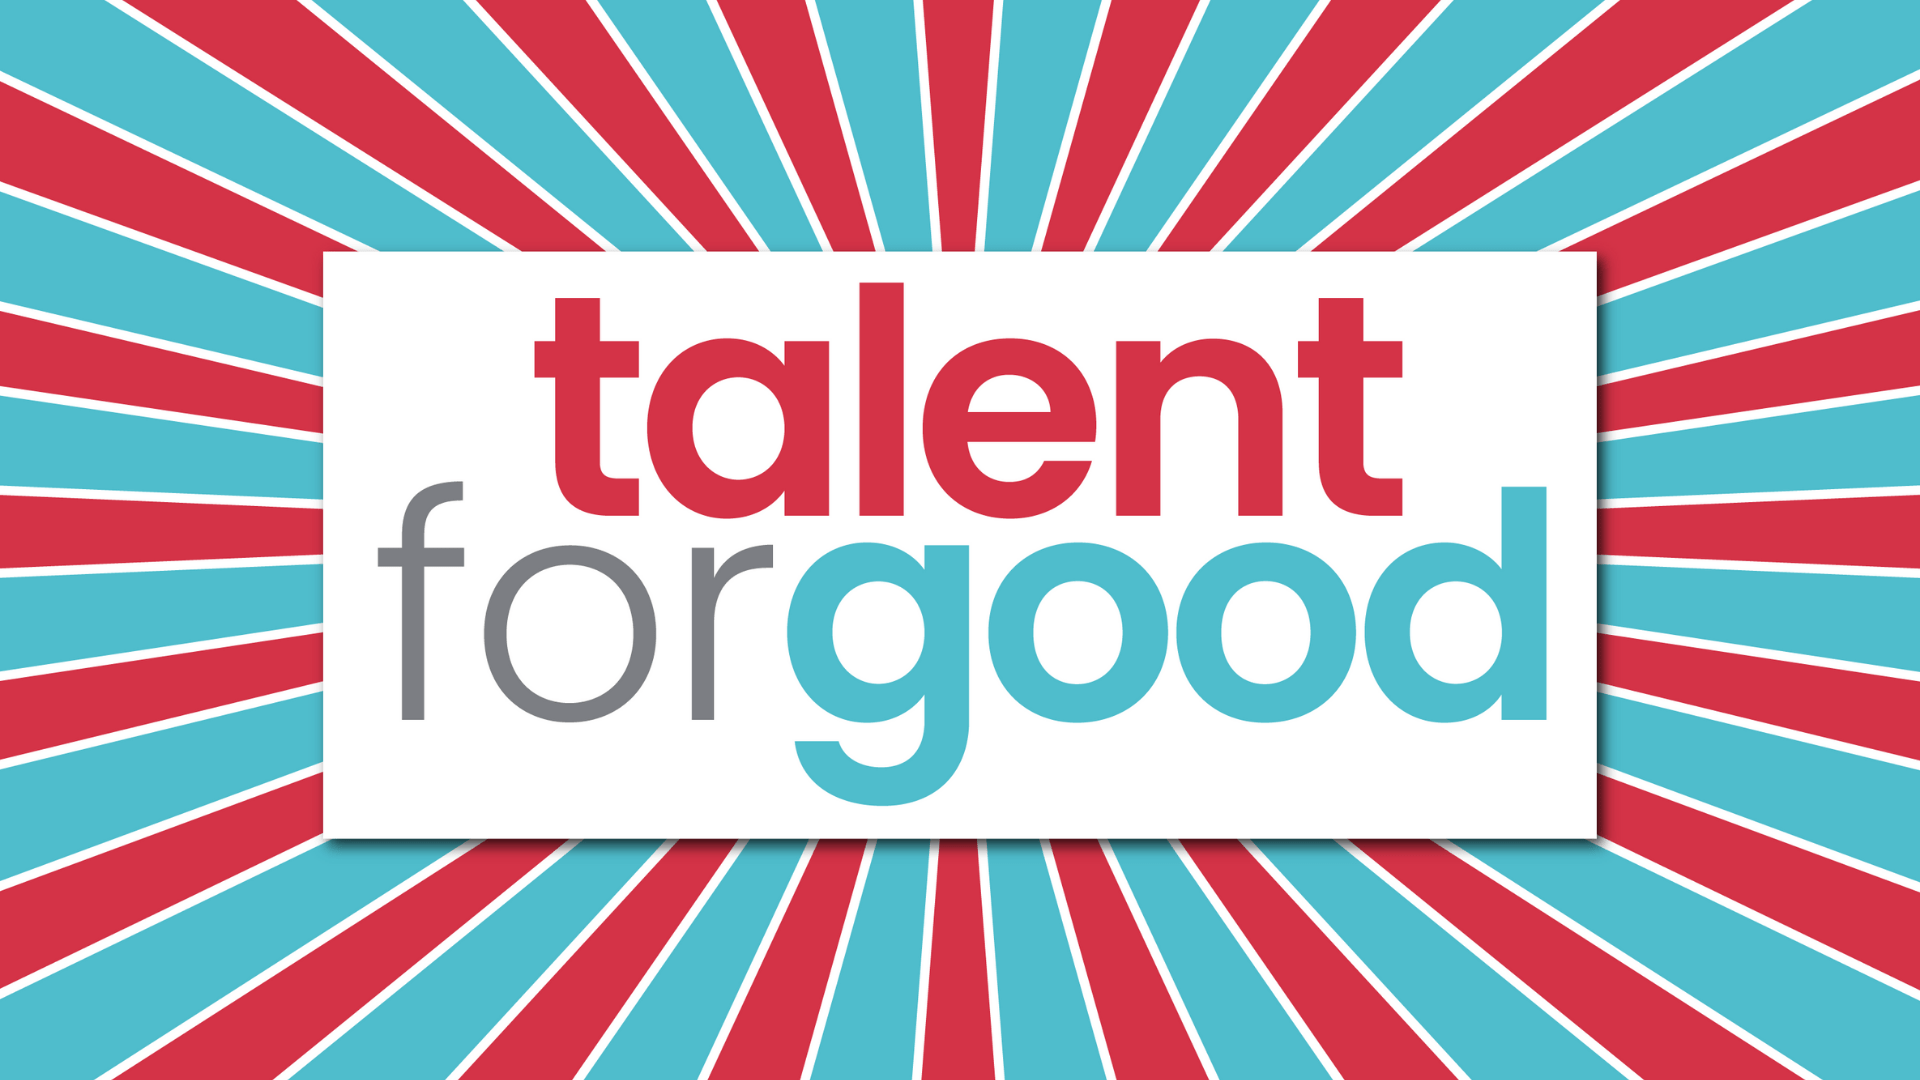 LHR Recruitment & Retention Talent For Good 360 Recruiting Service UK